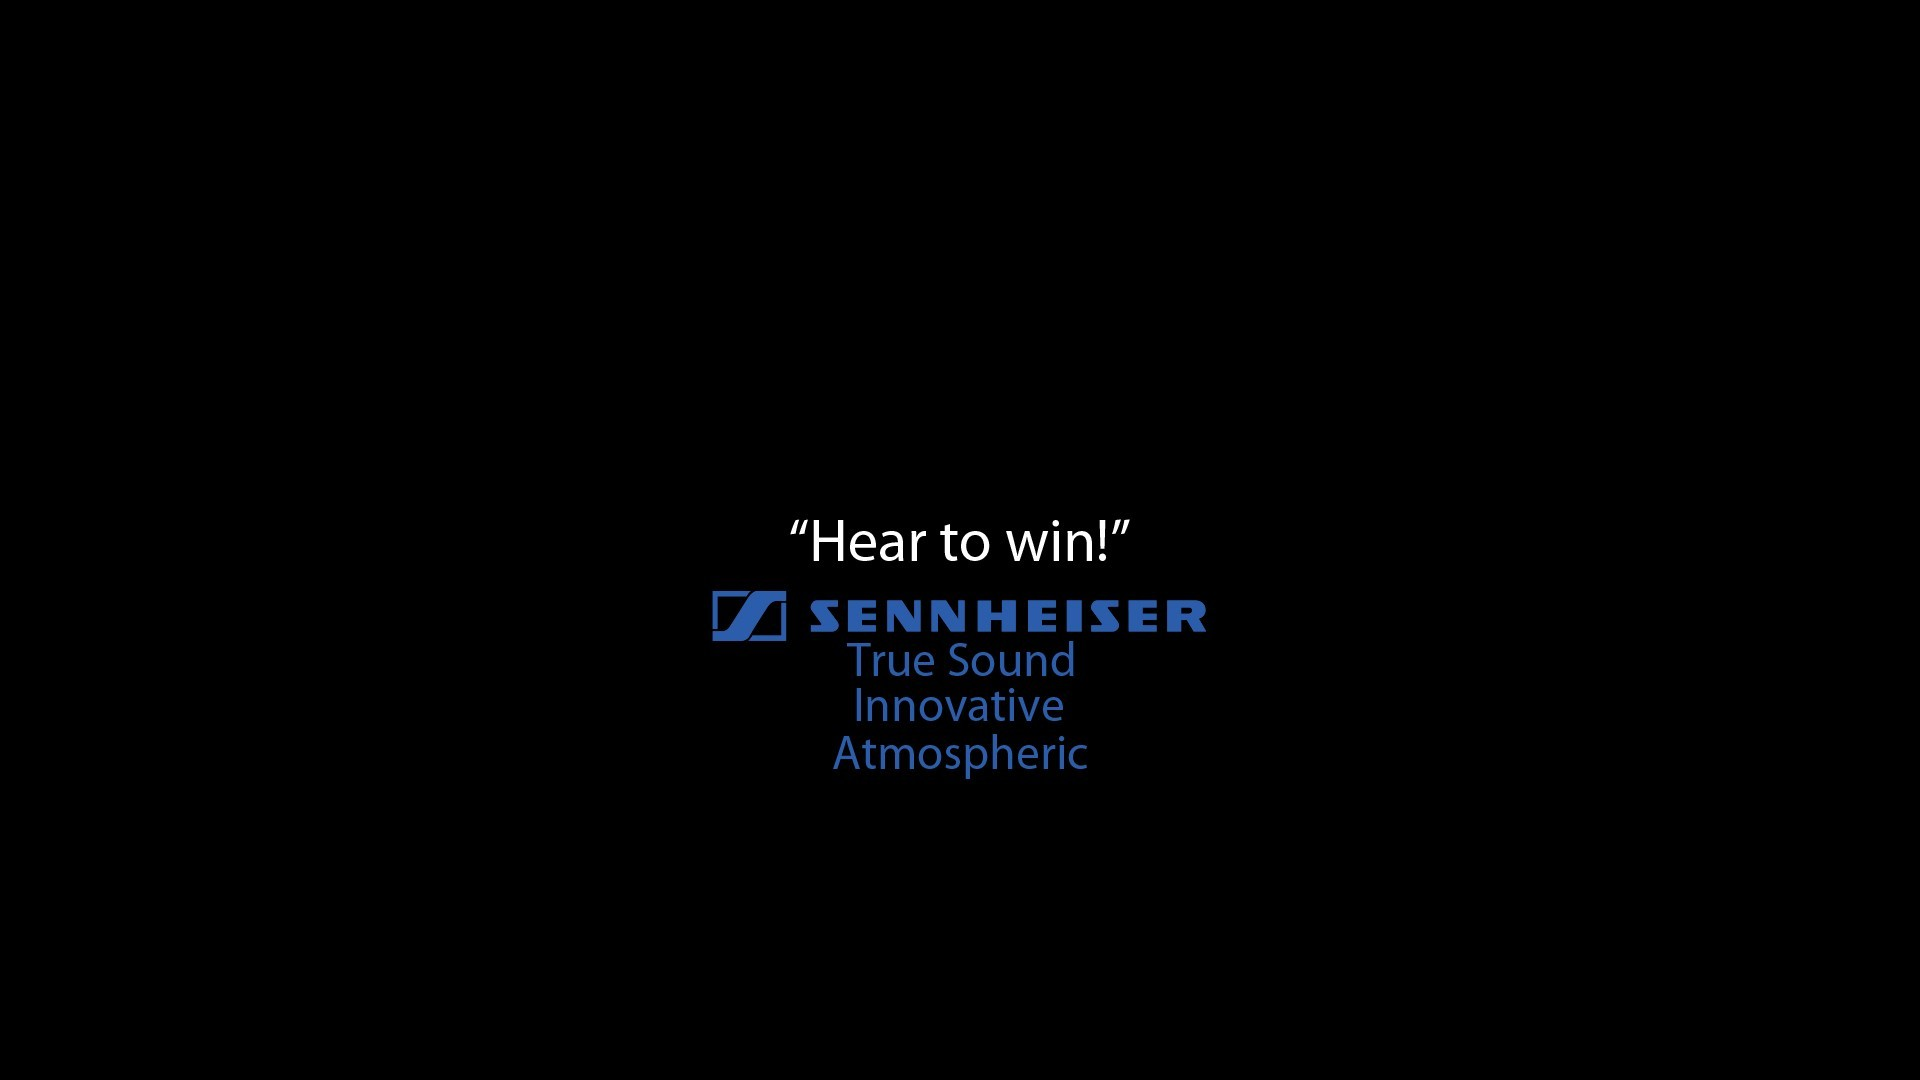 Quotes On Innovation Headphones Quotes Sound Innovation